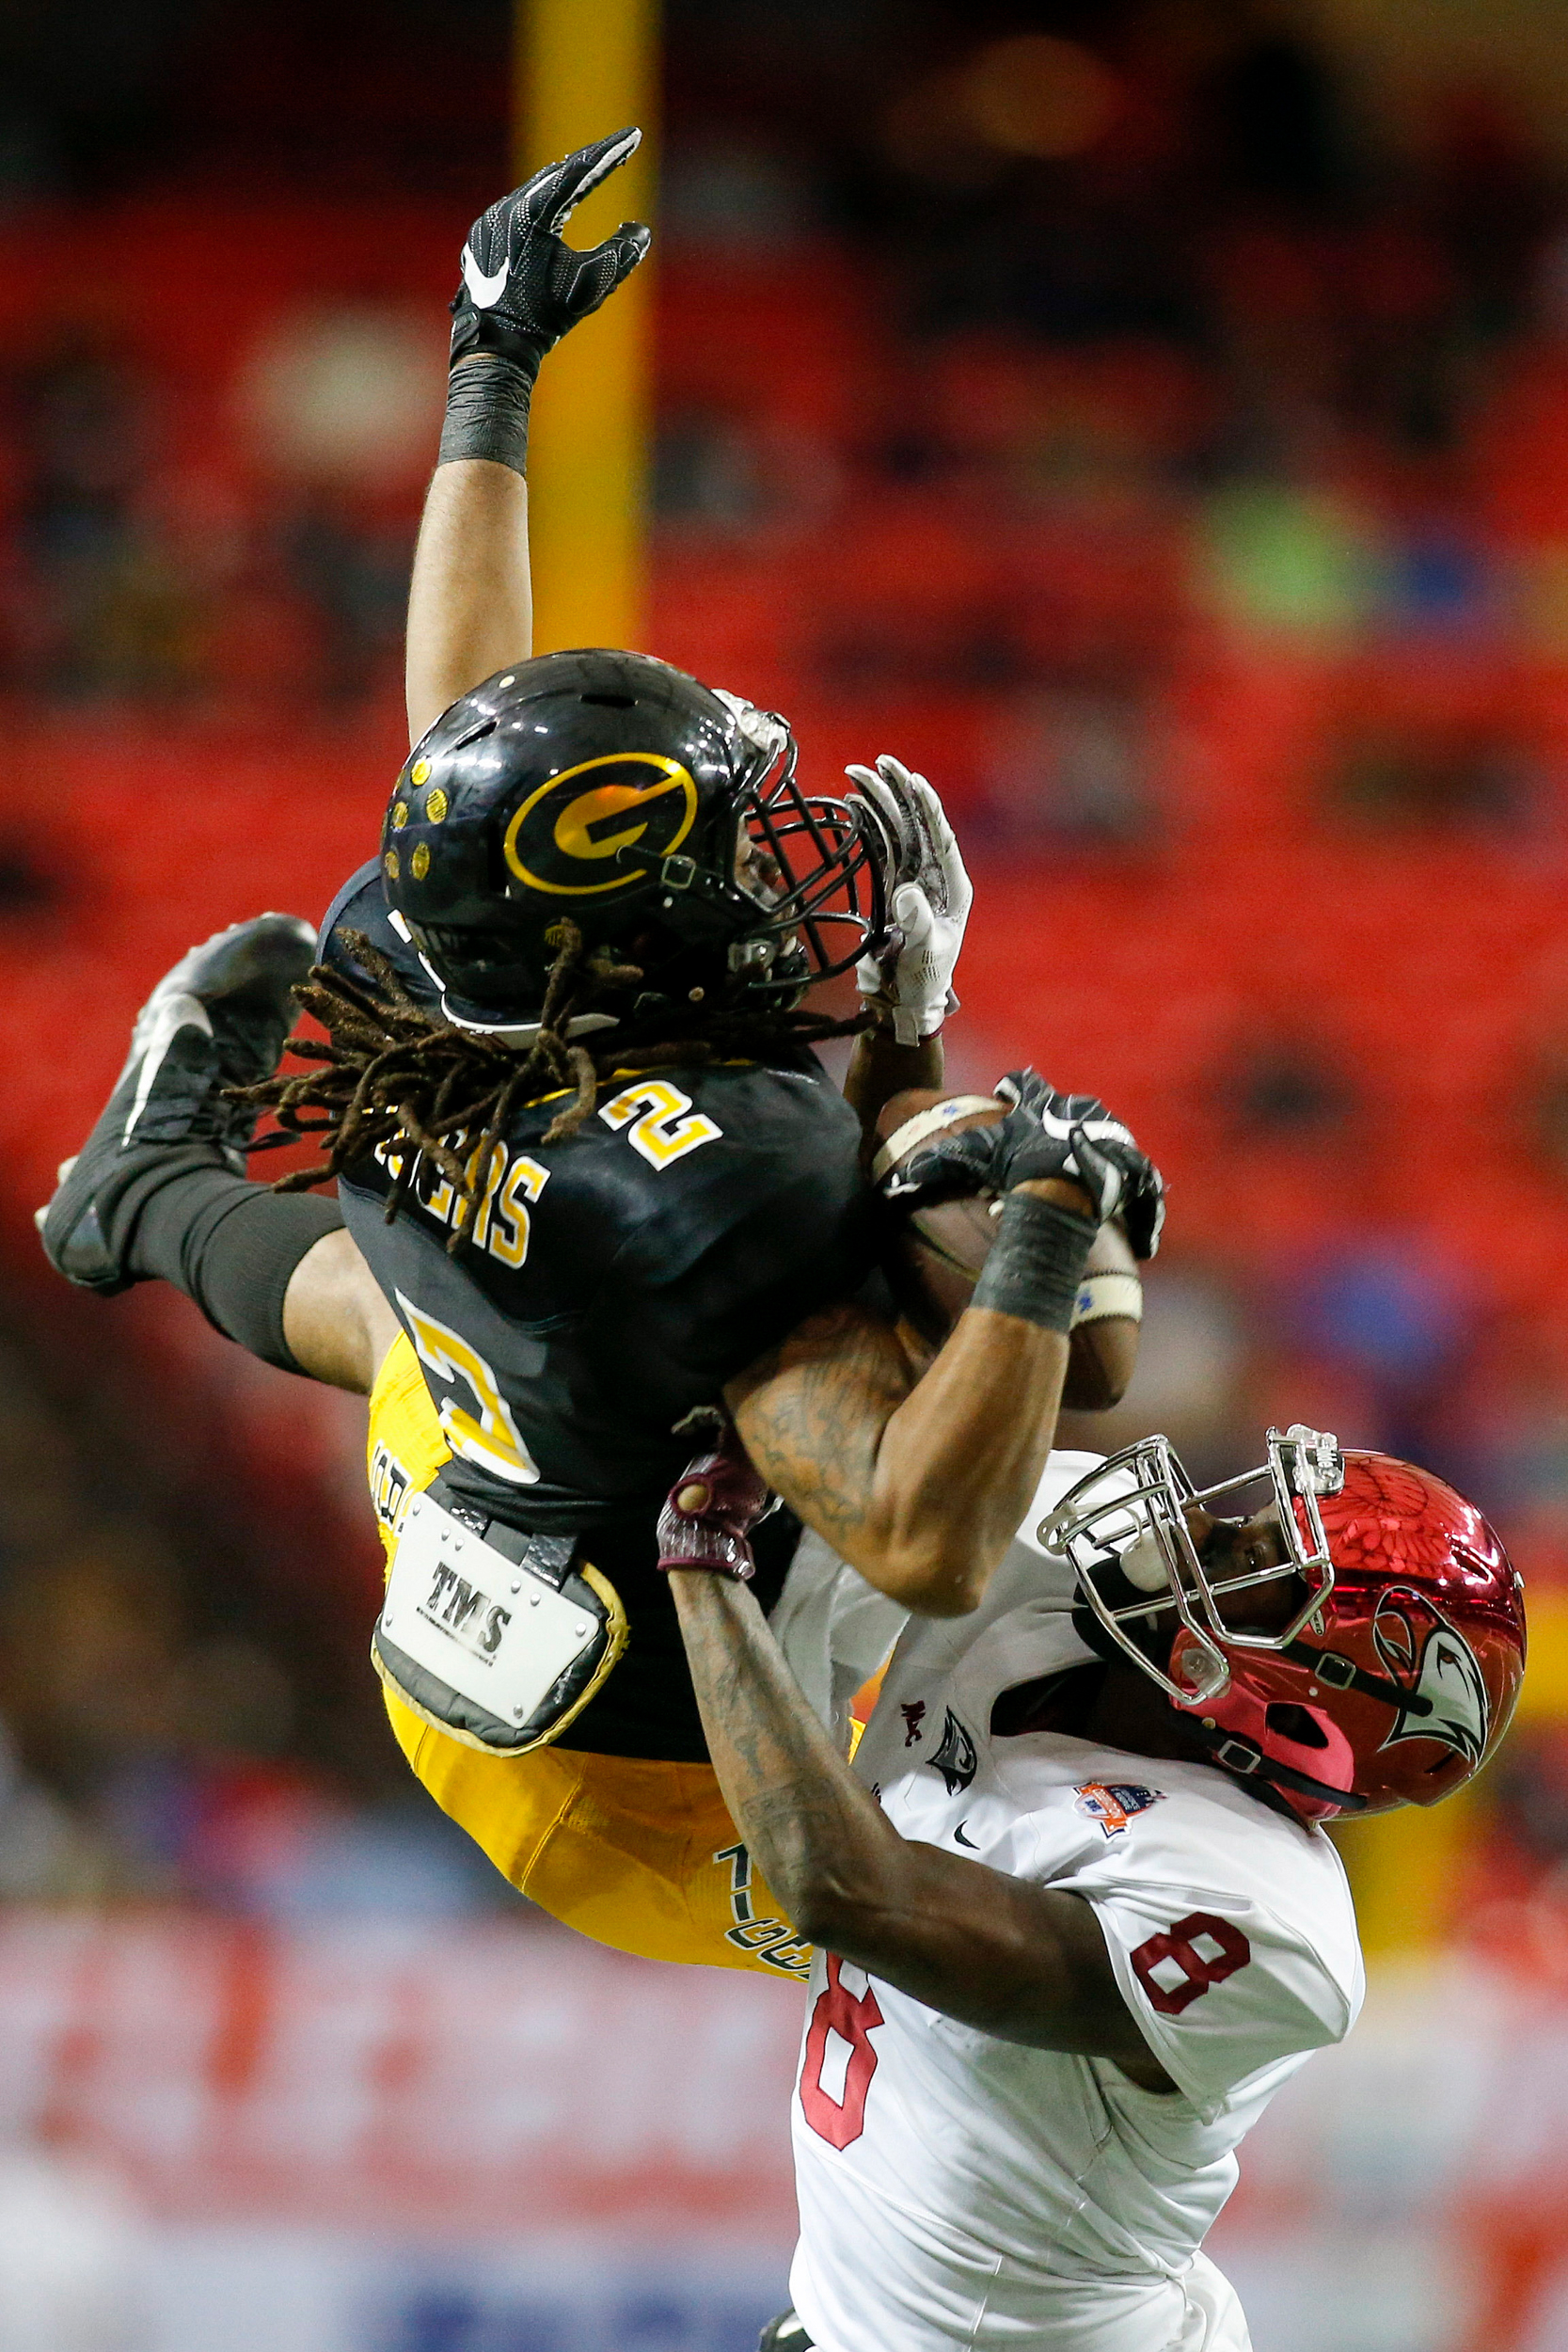 Grambling State Tigers wide receiver Verlan Hunter (2) catches a pass over North Carolina Central Eagles defensive back De'Mario Evans (8) in the fourth quarter at the Georgia Dome. The Tigers won 10-9.